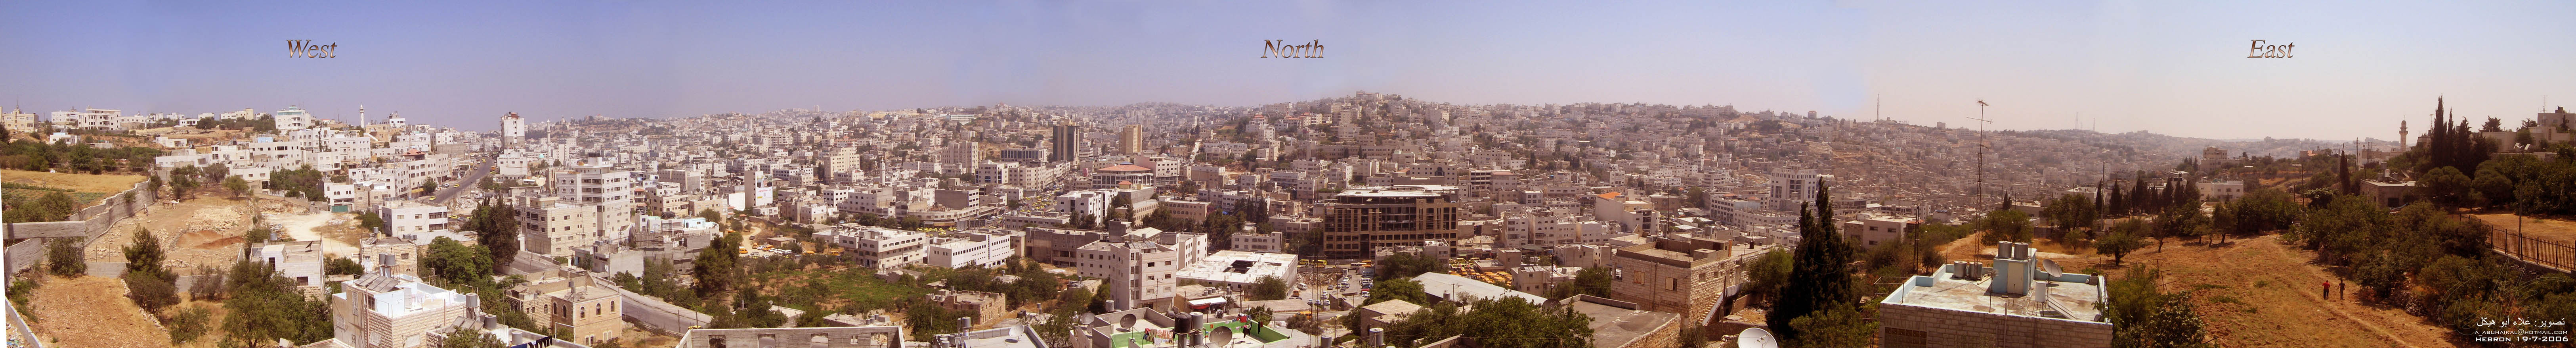 Hebron - الخليل : Panoramic picture of Hebron (taken from Jabal al-rhama in 2006)